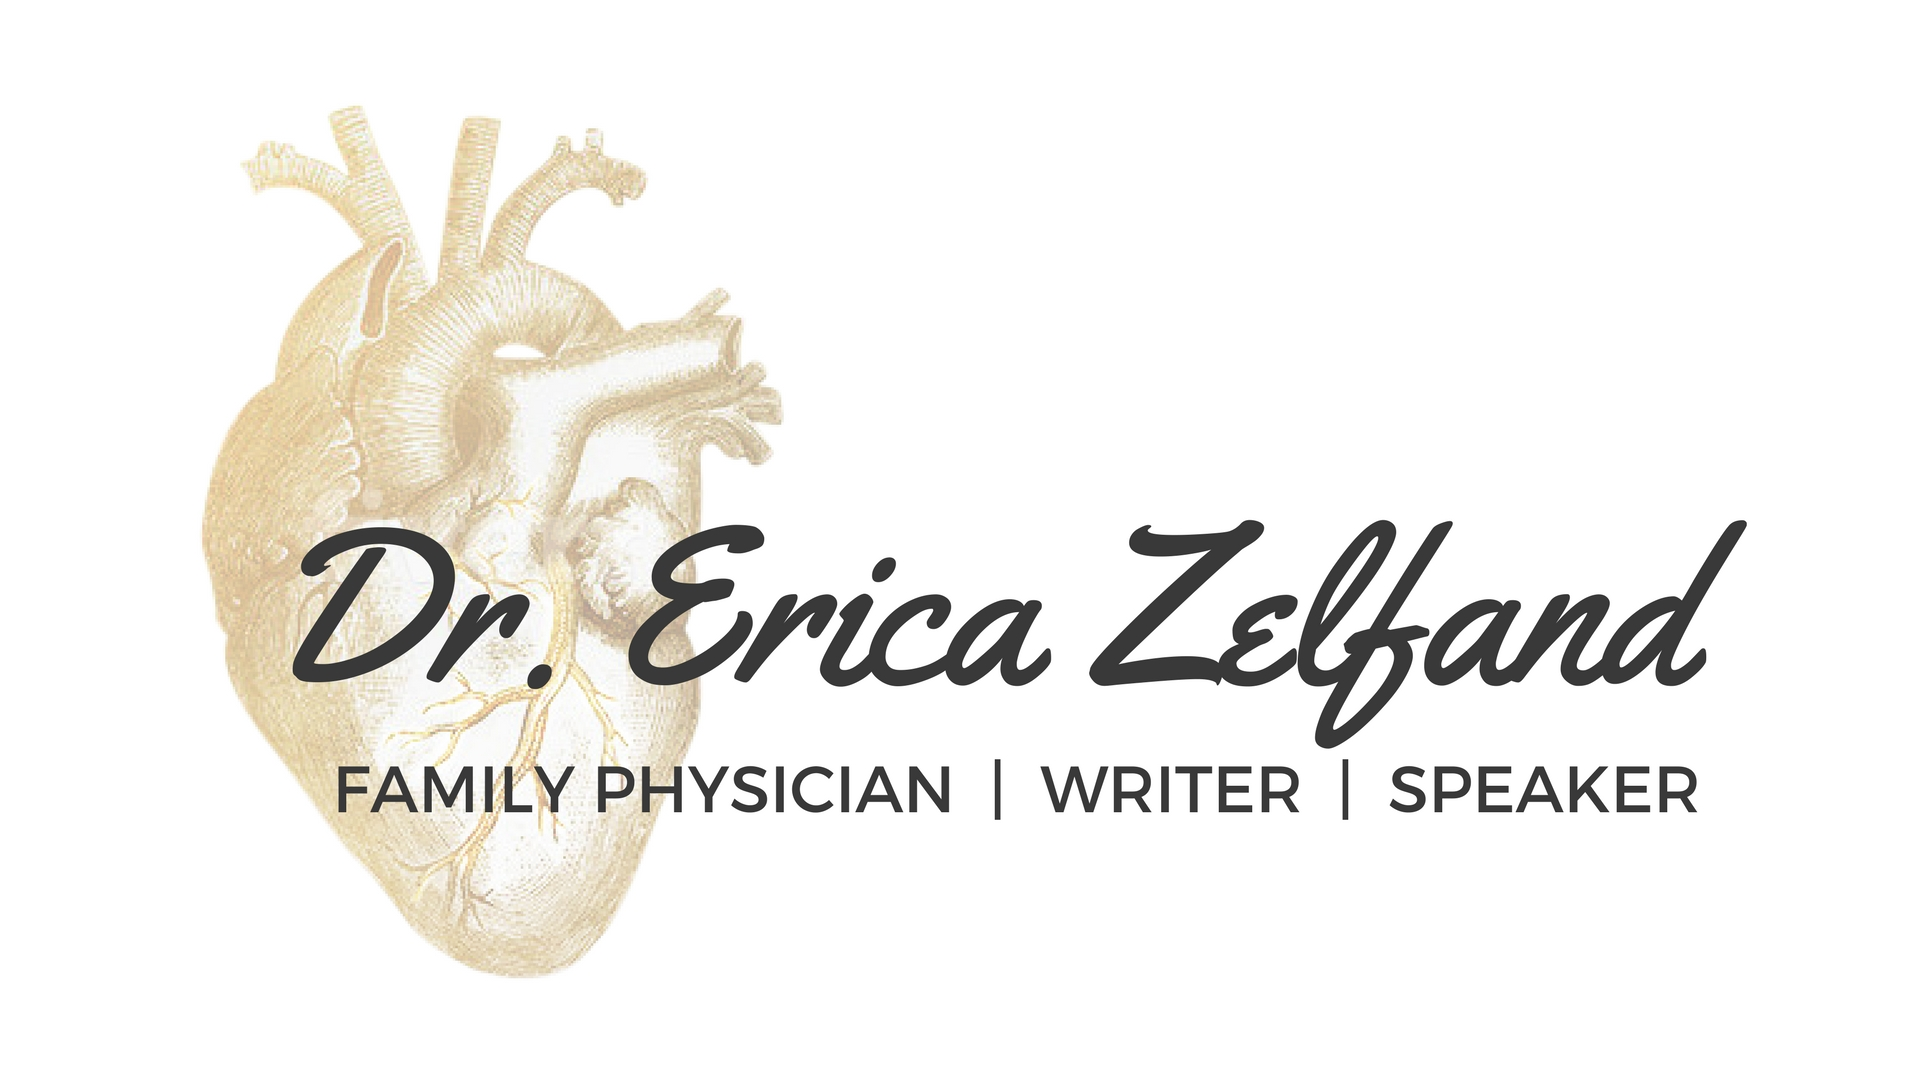 Dr. Erica Zelfand | Medical Writer, Speaker, Functional Medicine Physician | Portland, OR